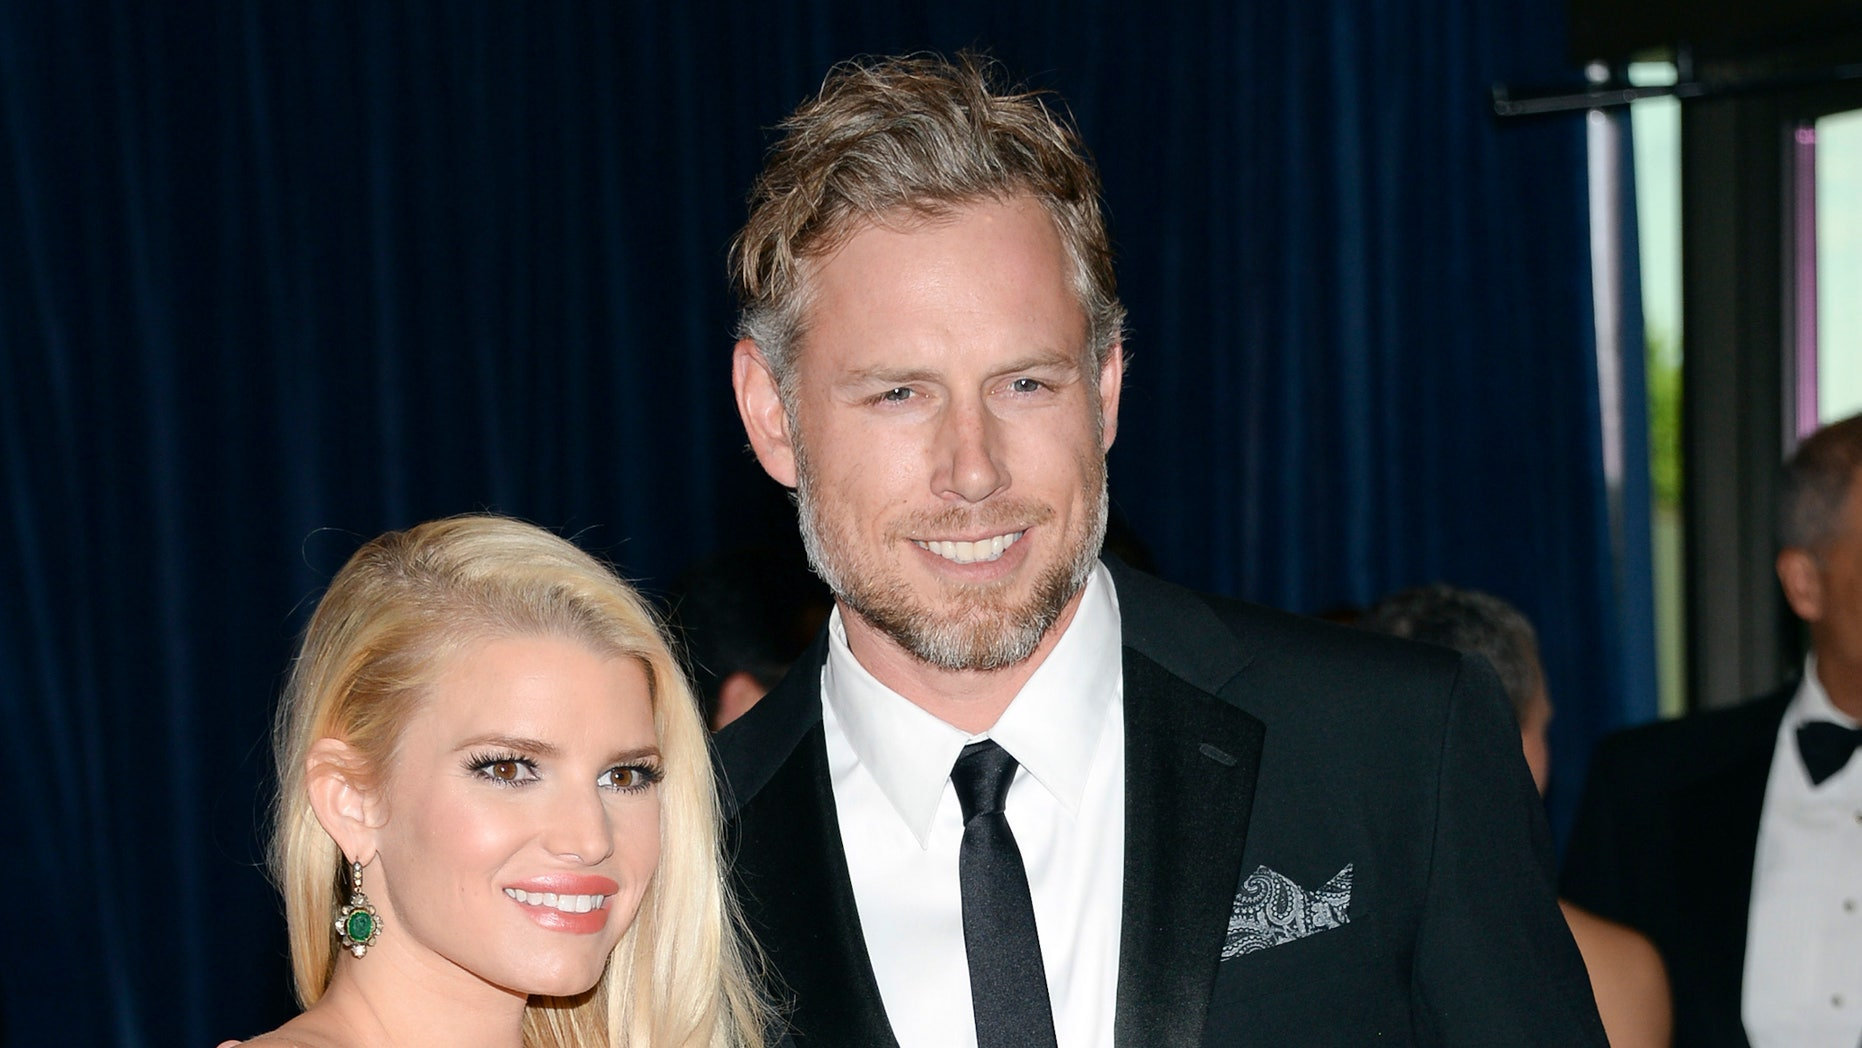 May 3, 2014. Jessica Simpson and Eric Johnson attend the White House Correspondents Association Dinner at the Washington Hilton Hotel in Washington.